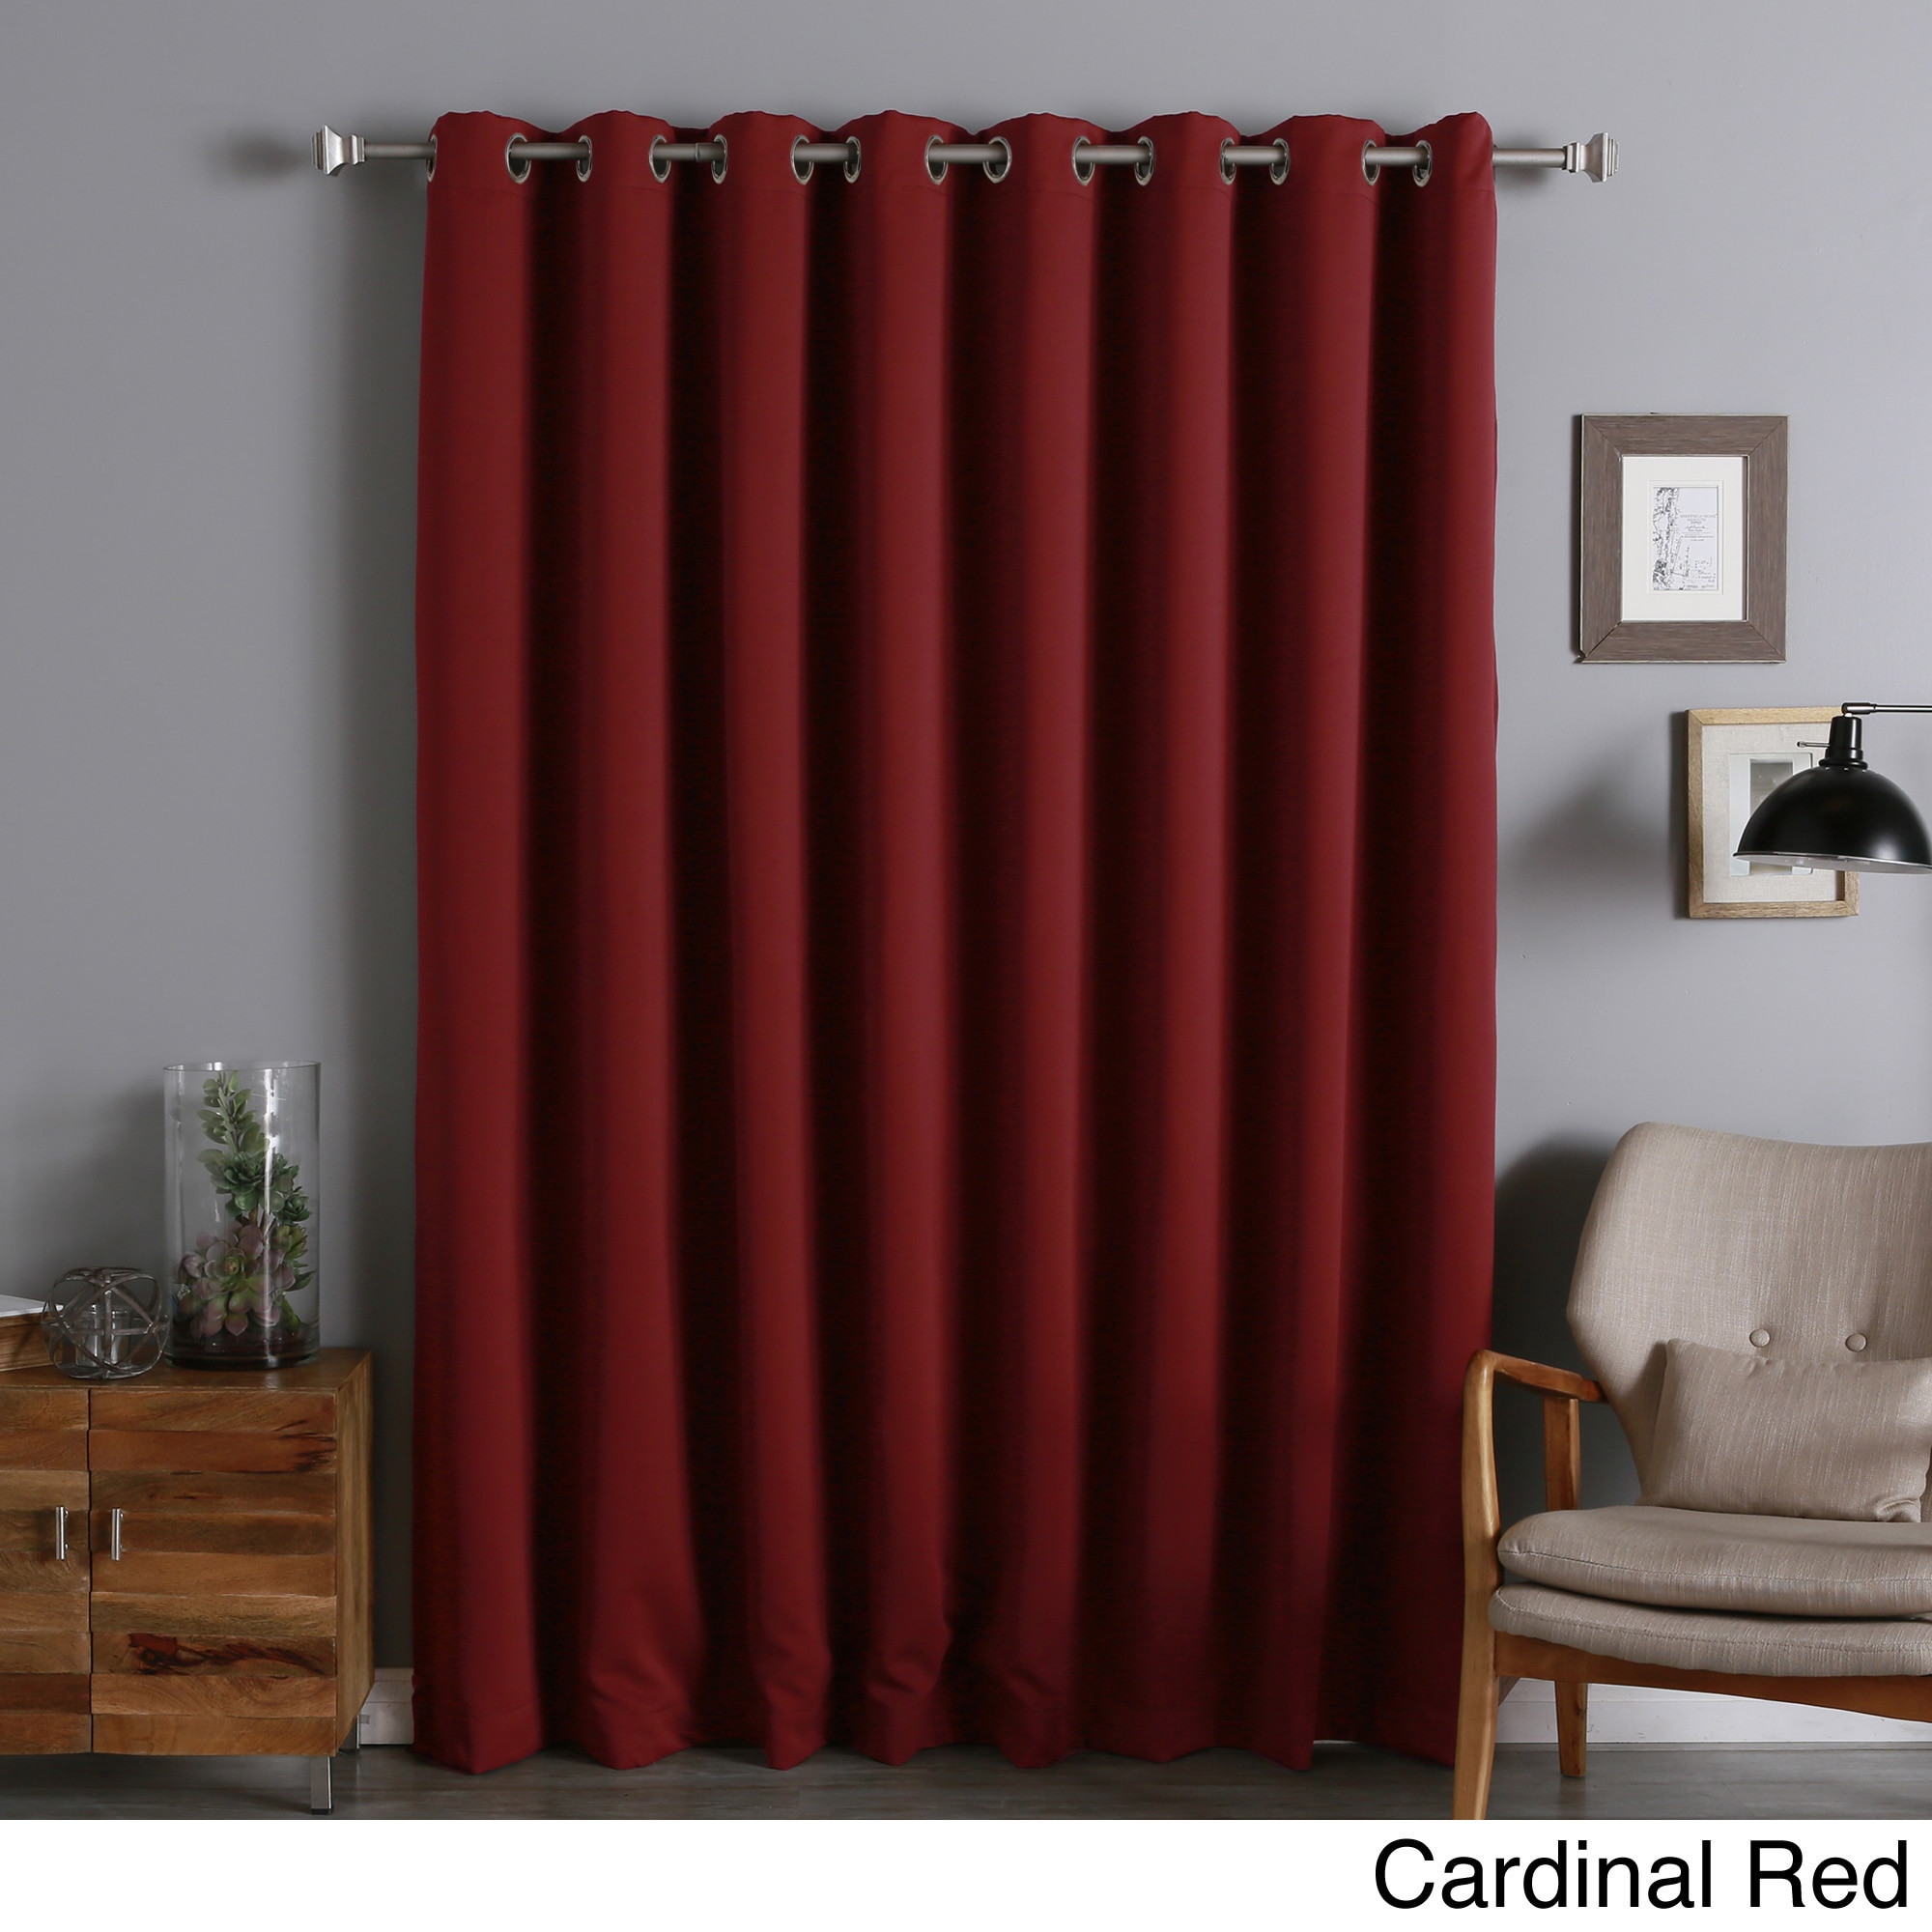 Aurora Home  Extra Width Thermal Insulated 96-inch Blackout Curtain Panel